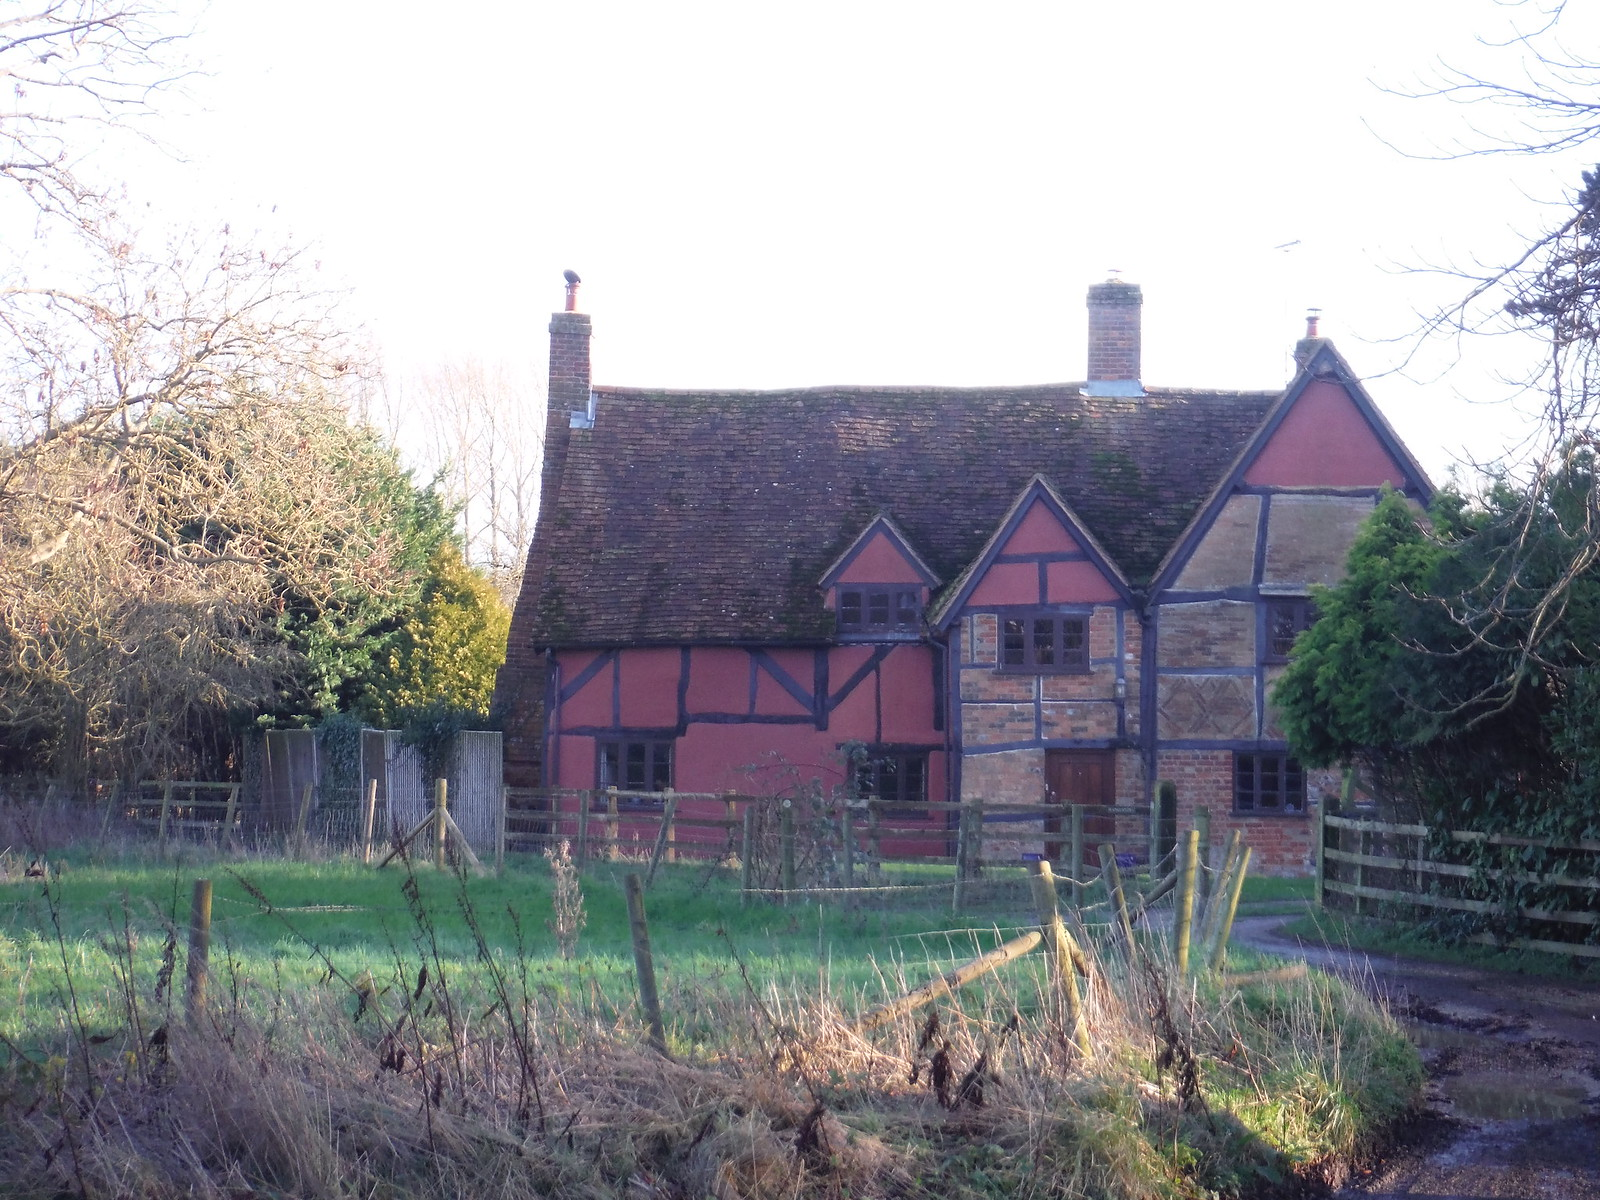 House in Nether Winchendon SWC Walk 191 Haddenham Circular (via Brill)